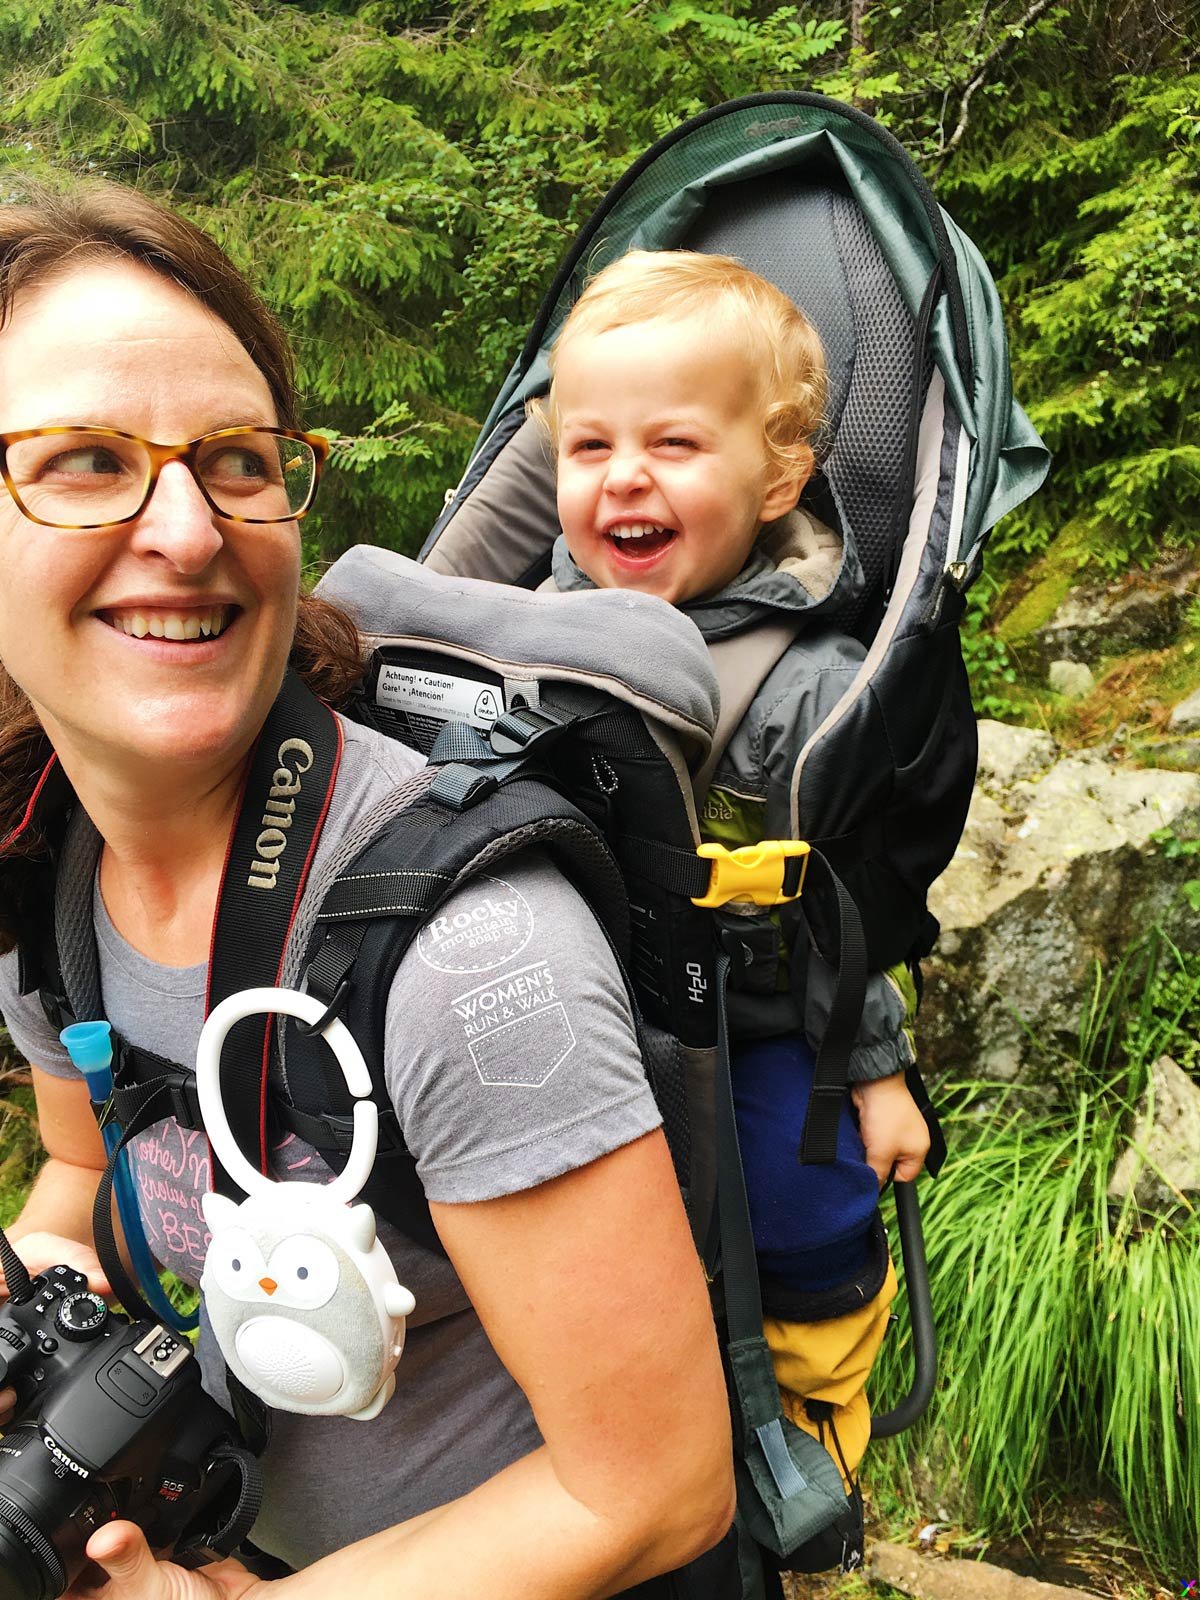 A toddler laughs while hiking in a Deuter Kid Comfort 3 backpack carrier